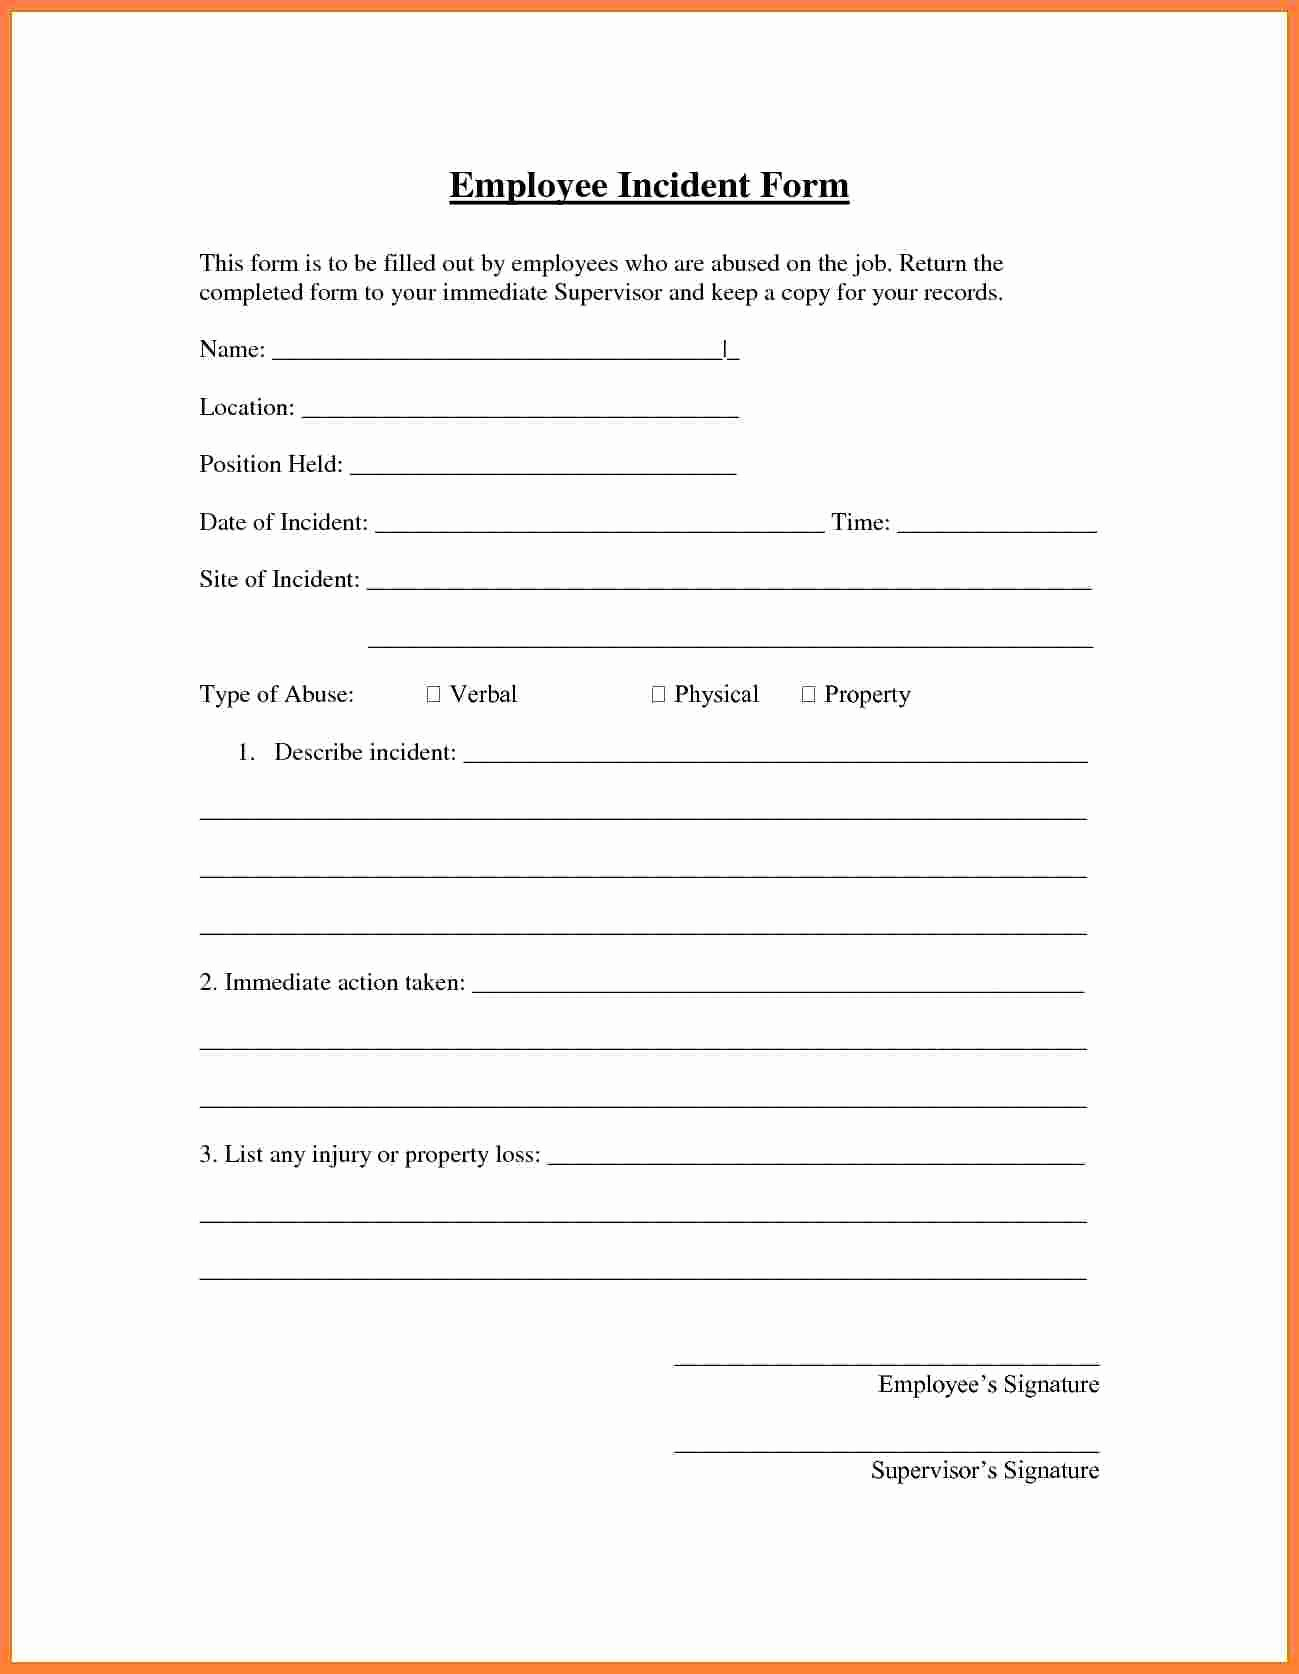 Employee Accident Report Template Beautiful 6 Employee Accident Report form Template